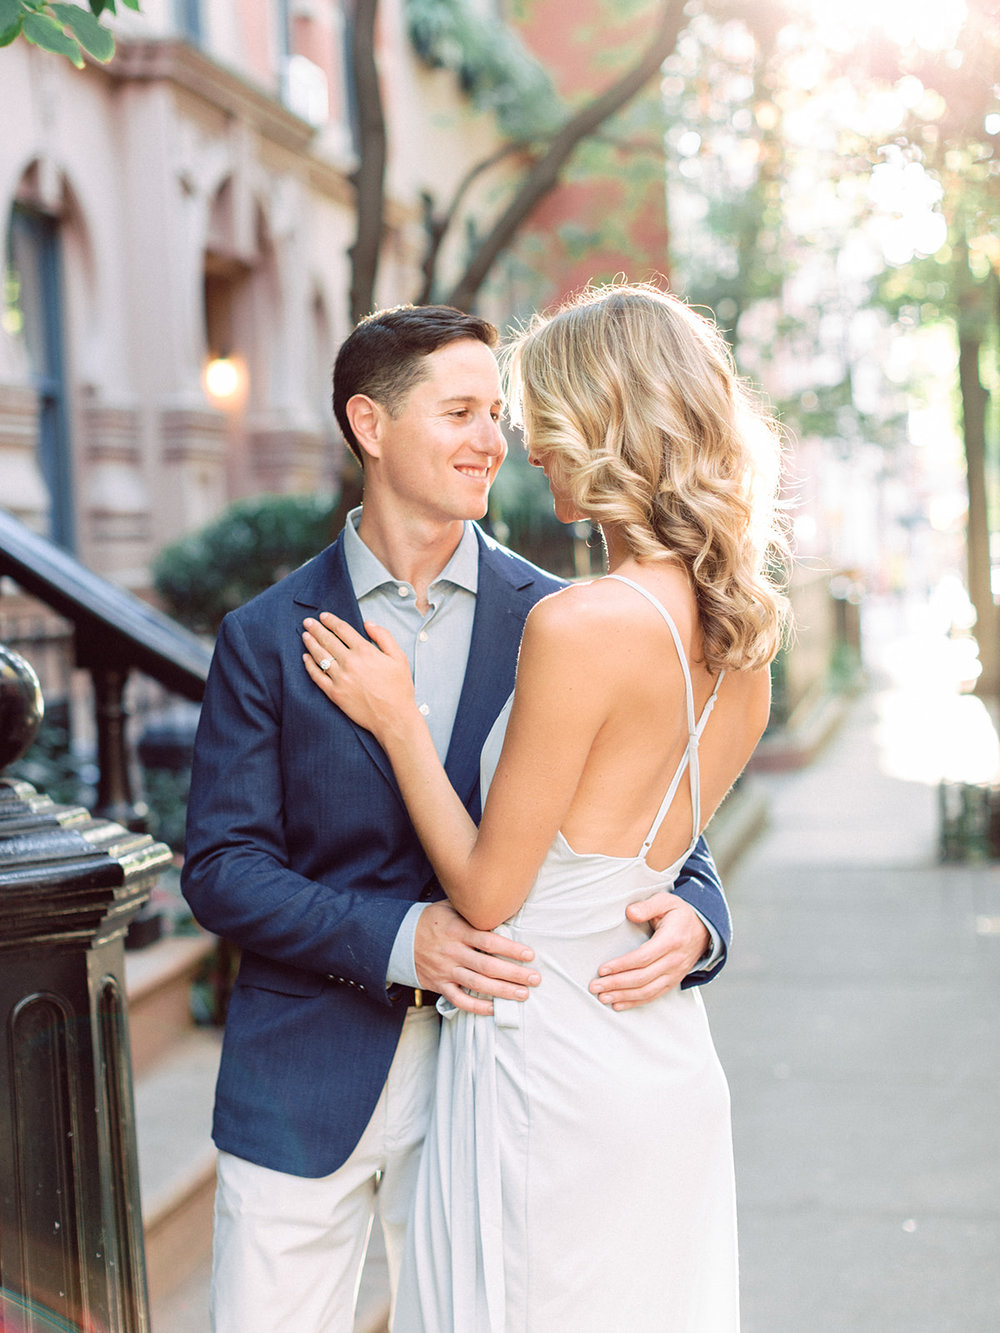 New York City Engagement Photos with Rachel May Photography-92317-85.jpg